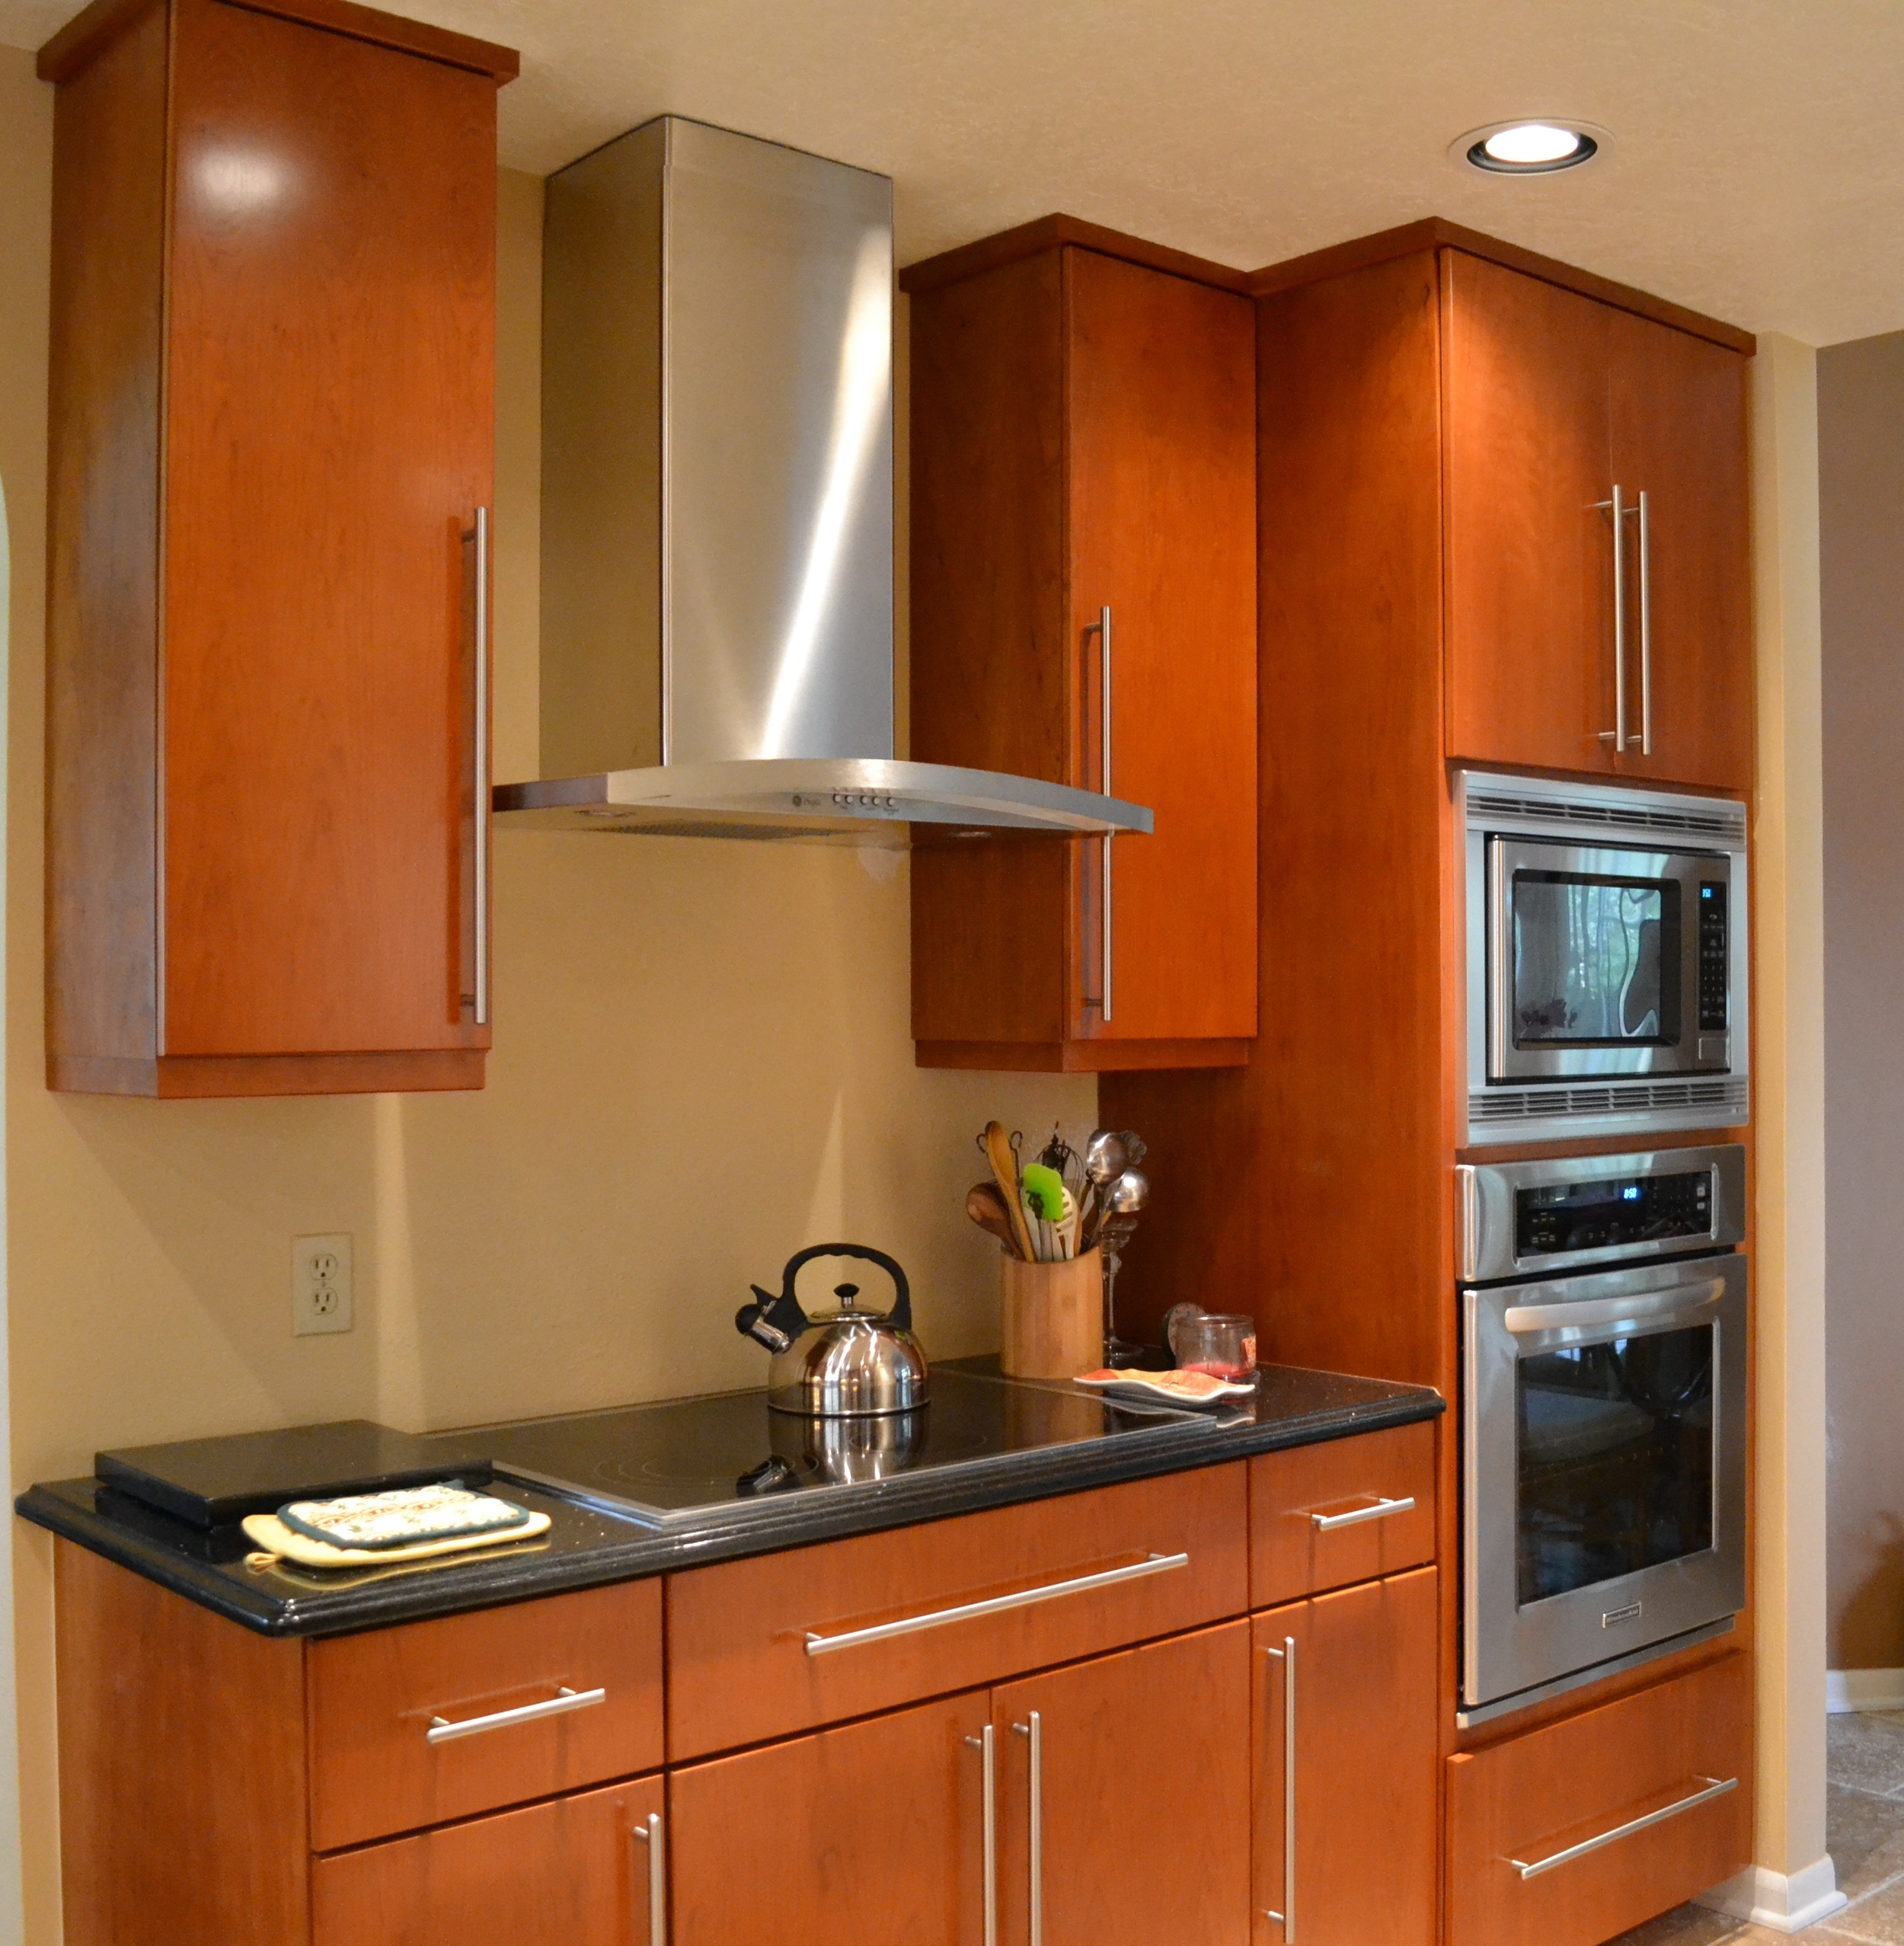 Kitchens — Cabinet Designs of Central Florida